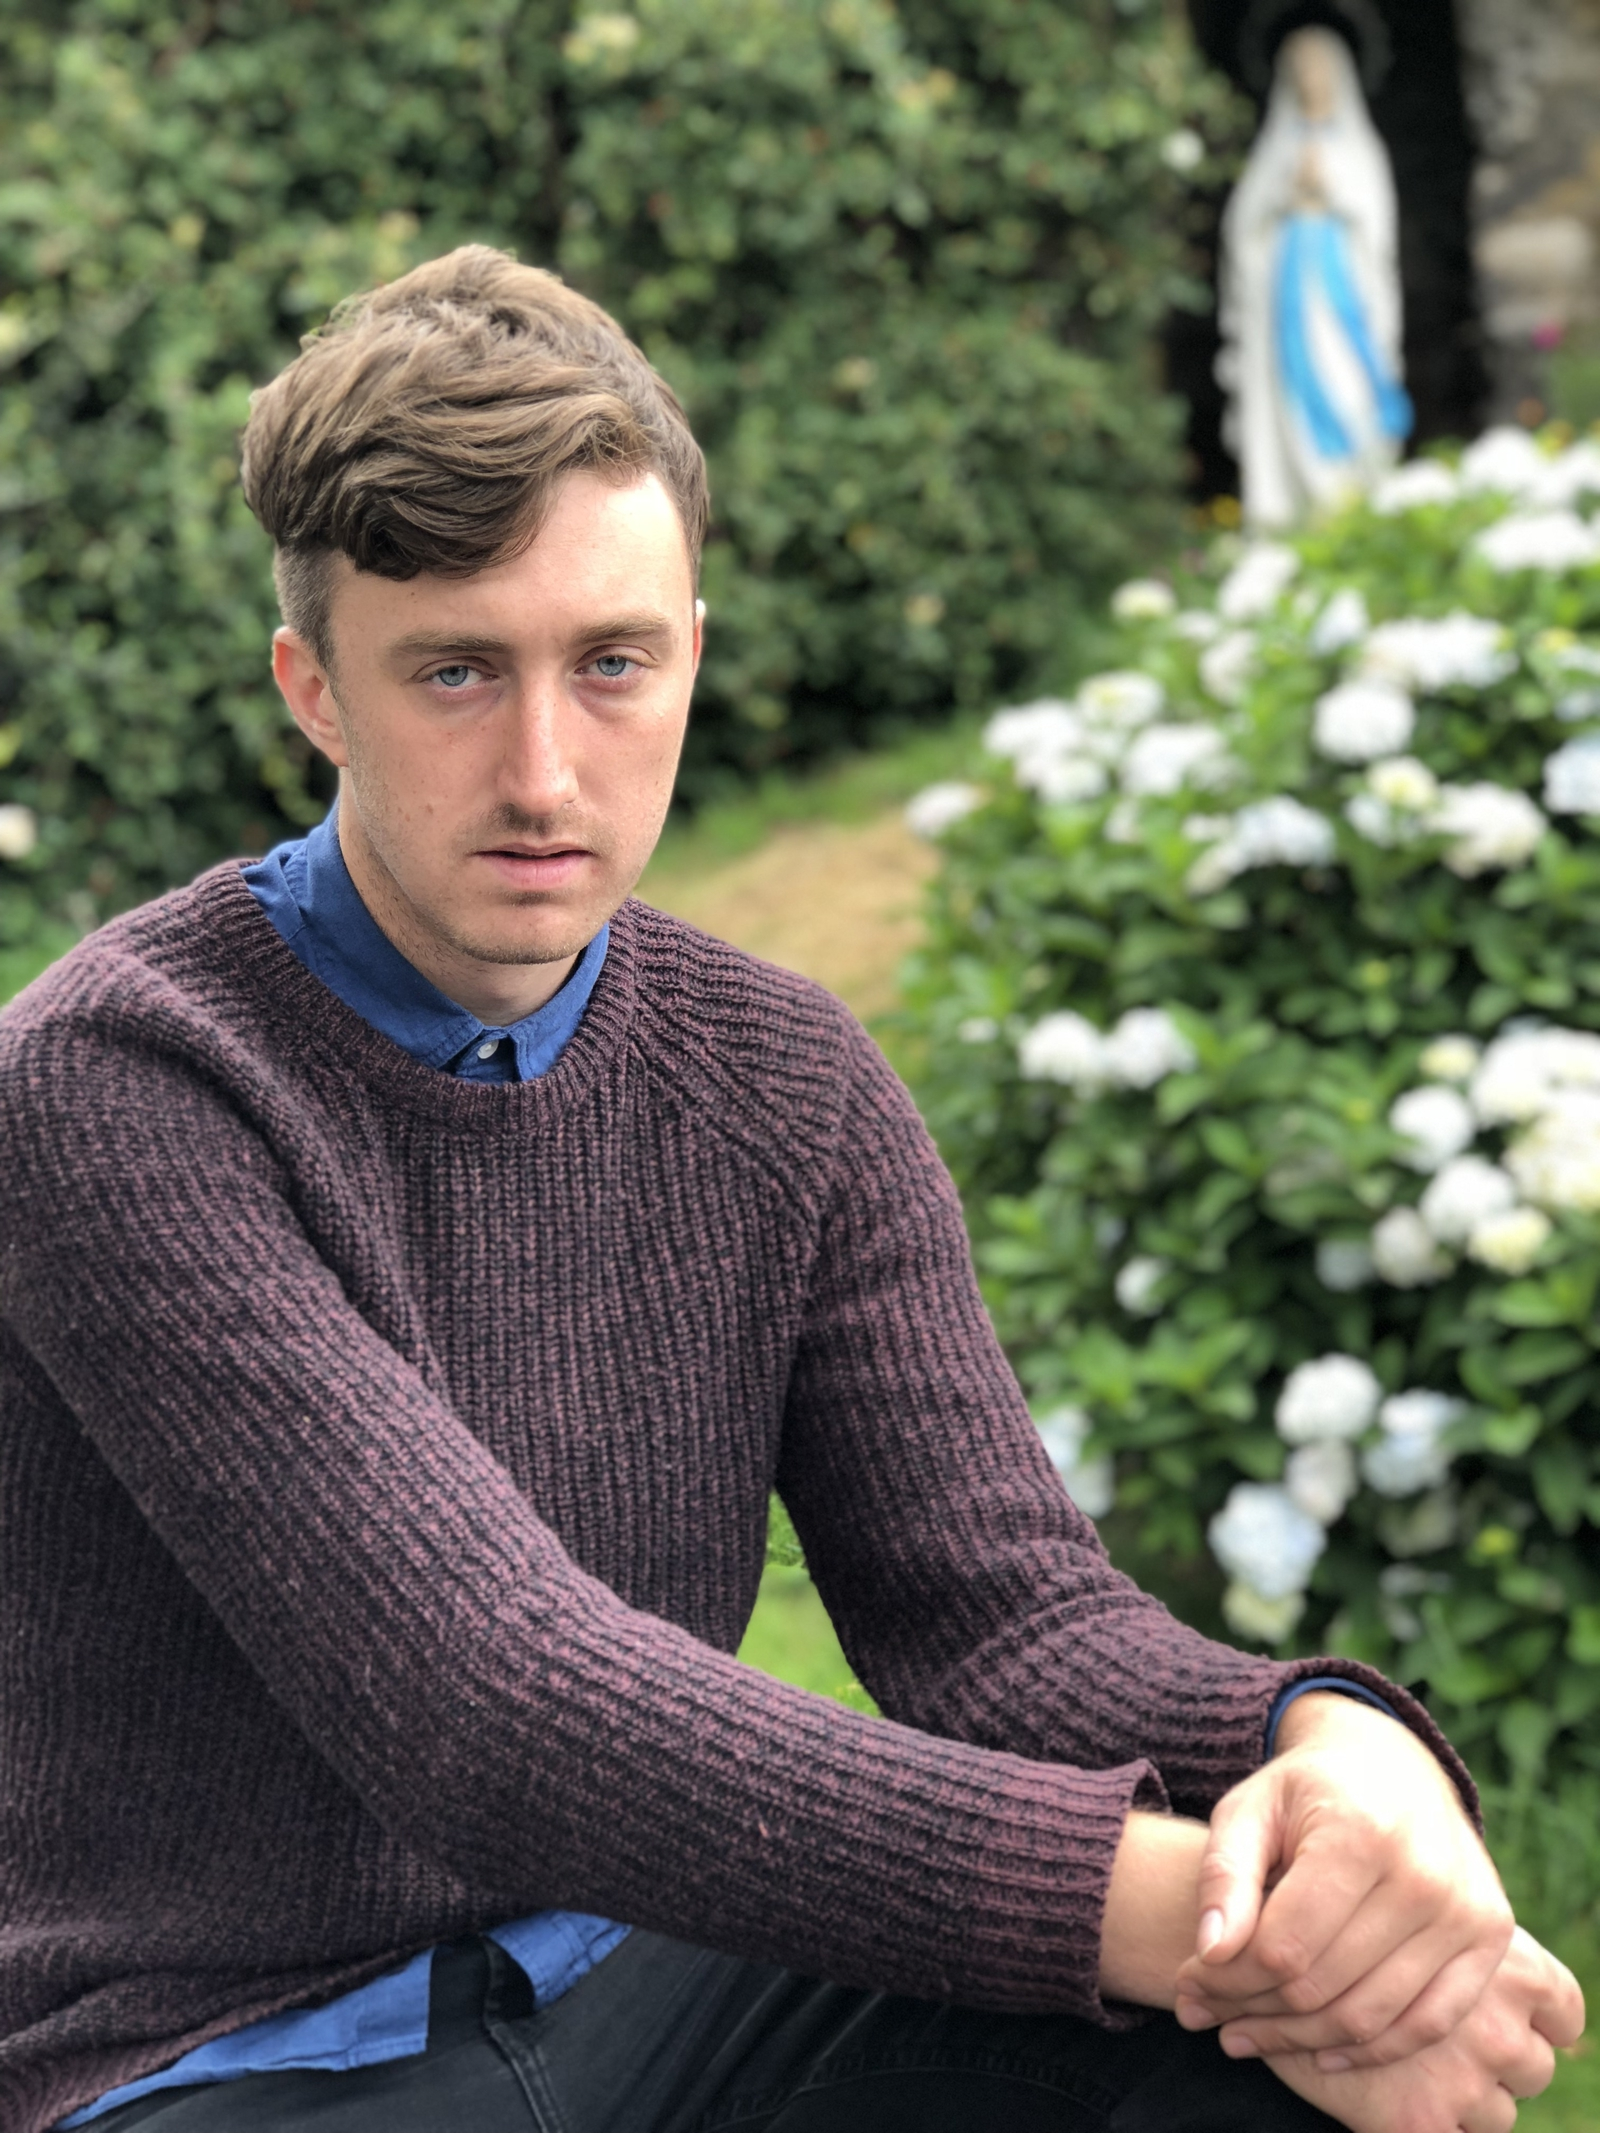 Image - Lewis Kenny, a spoken word poet from Cabra in Dublin, based in Skibbereen, Co Cork